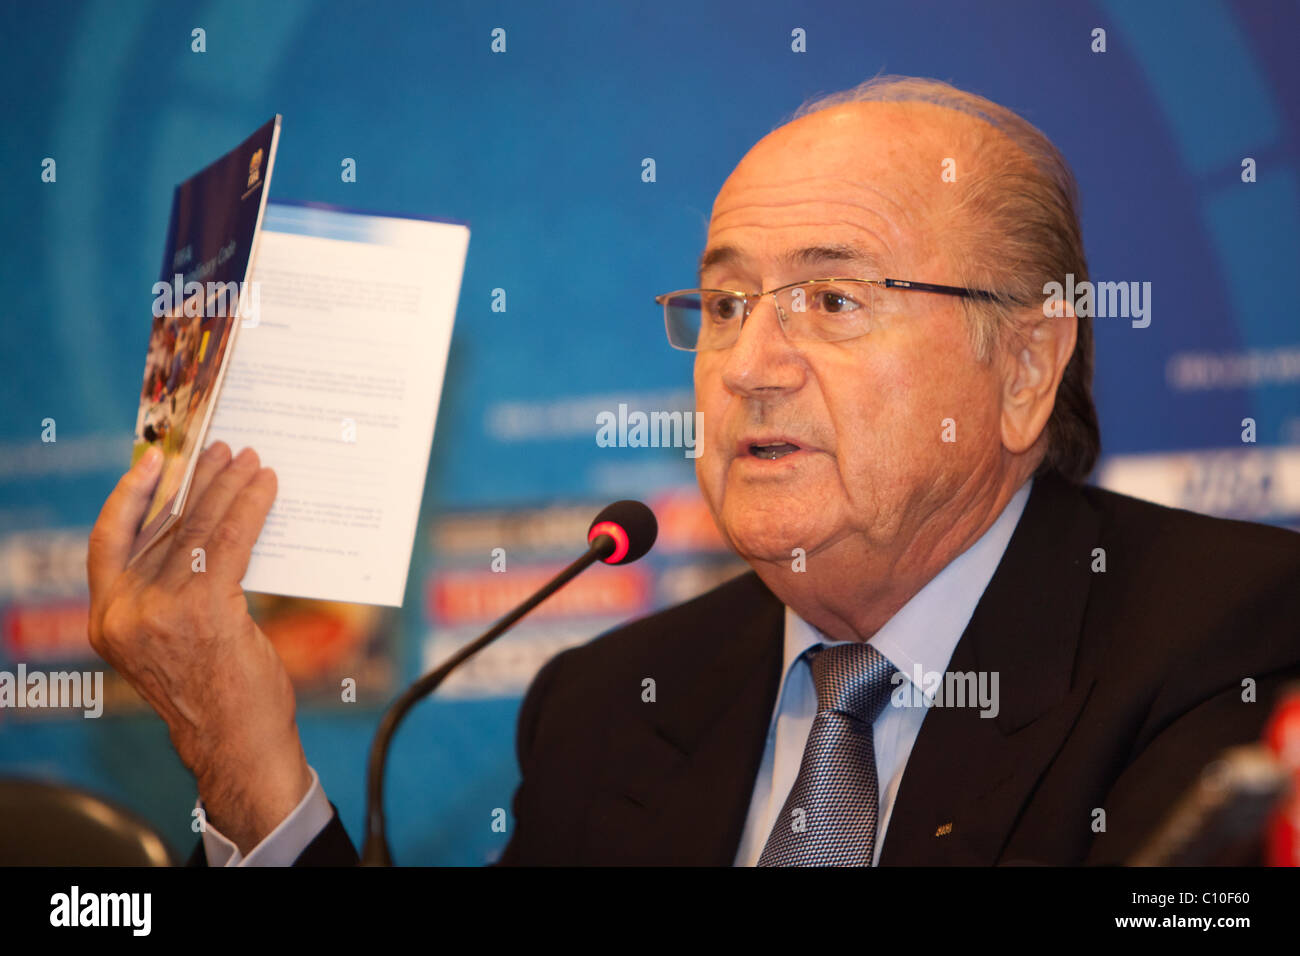 FIFA President Sepp Blatter holds a copy of the FIFA Disciplinary Code while addressing a question at a U20 press - Stock Image